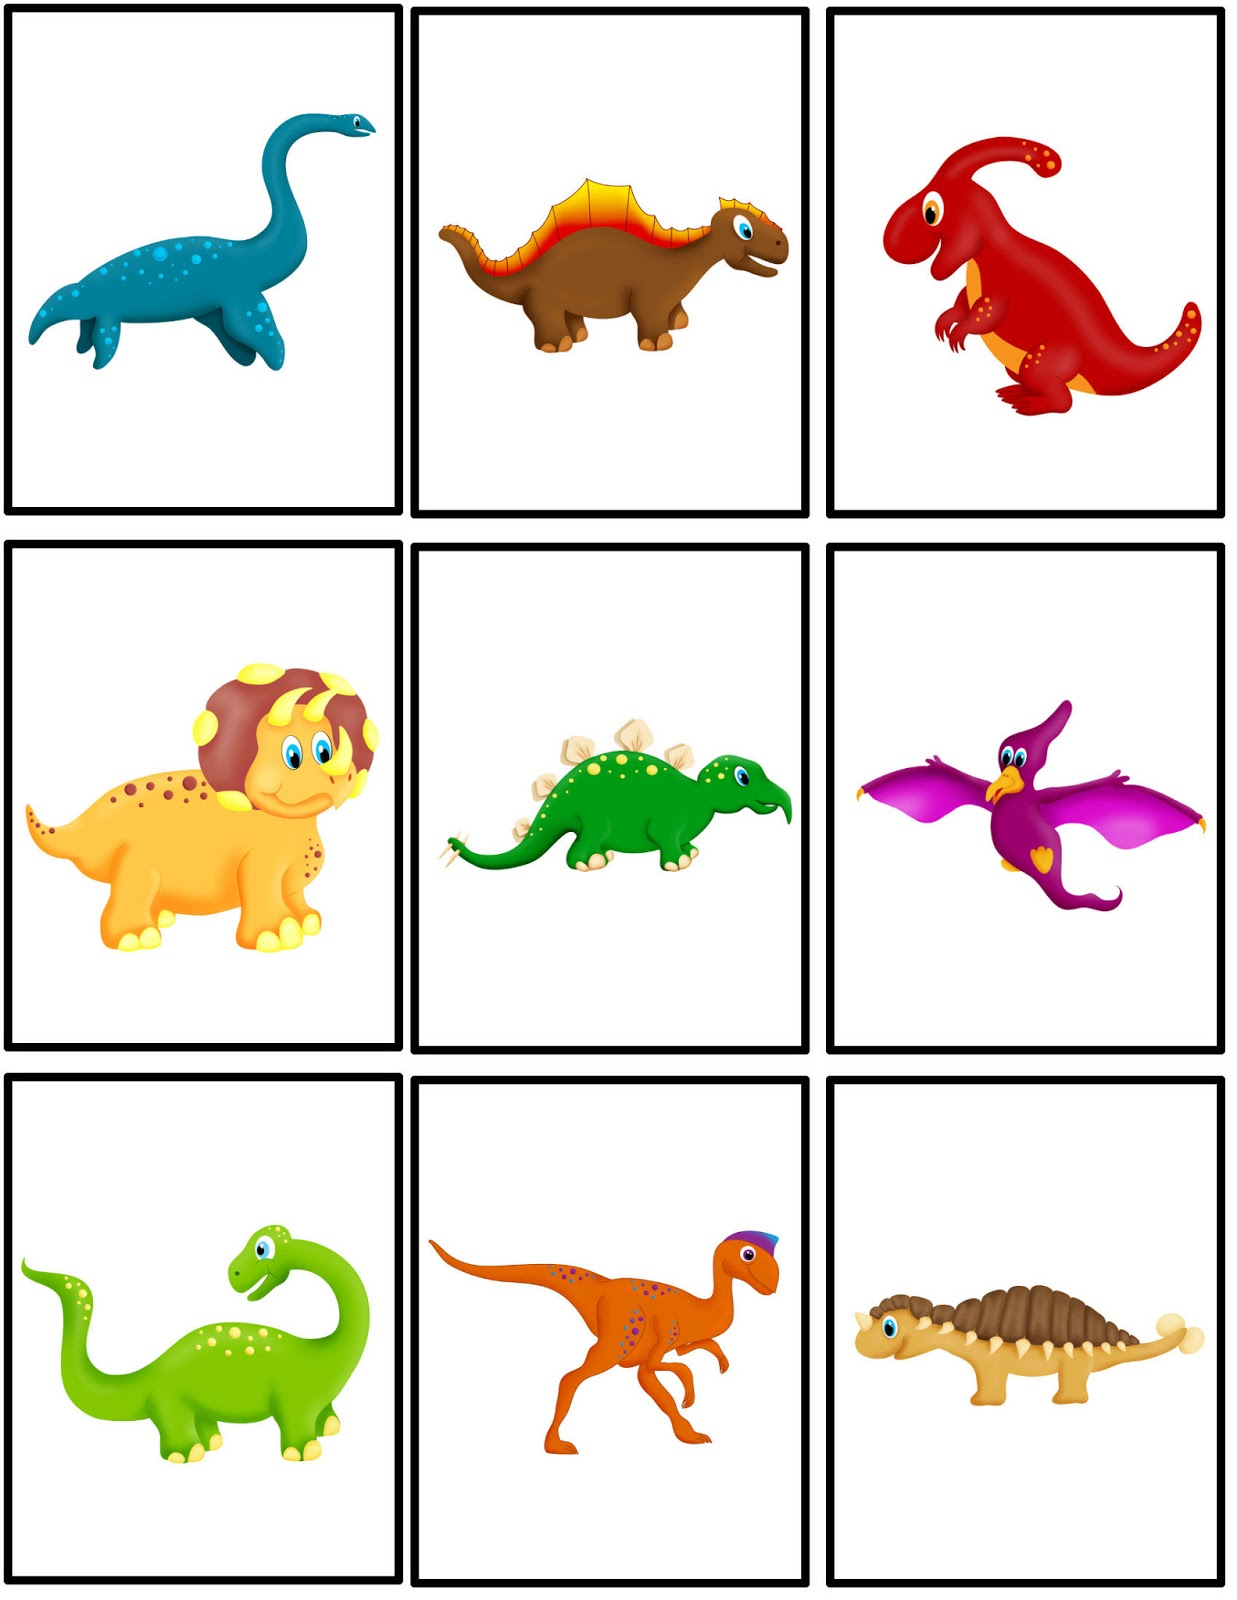 Printable color matching games for preschoolers -  Free Dinosaur Matching Packet